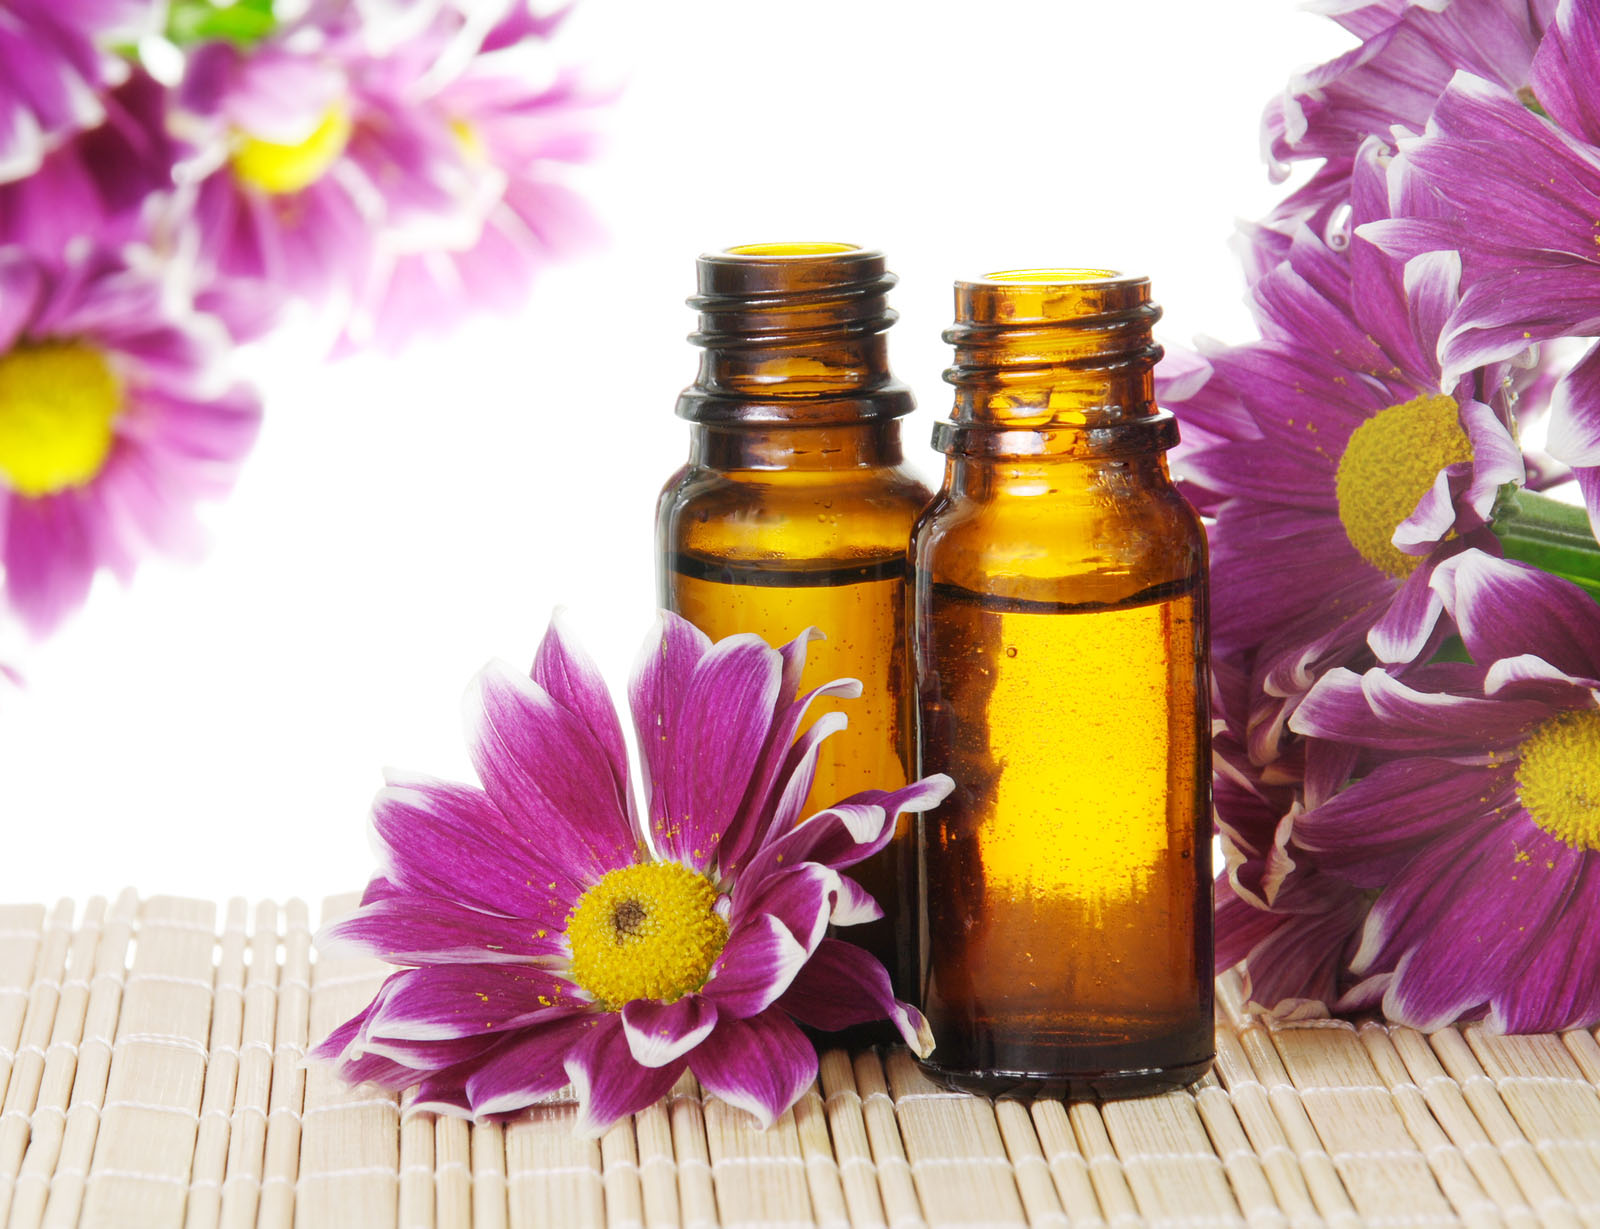 Benefits of Using Aroma Therapy Oils